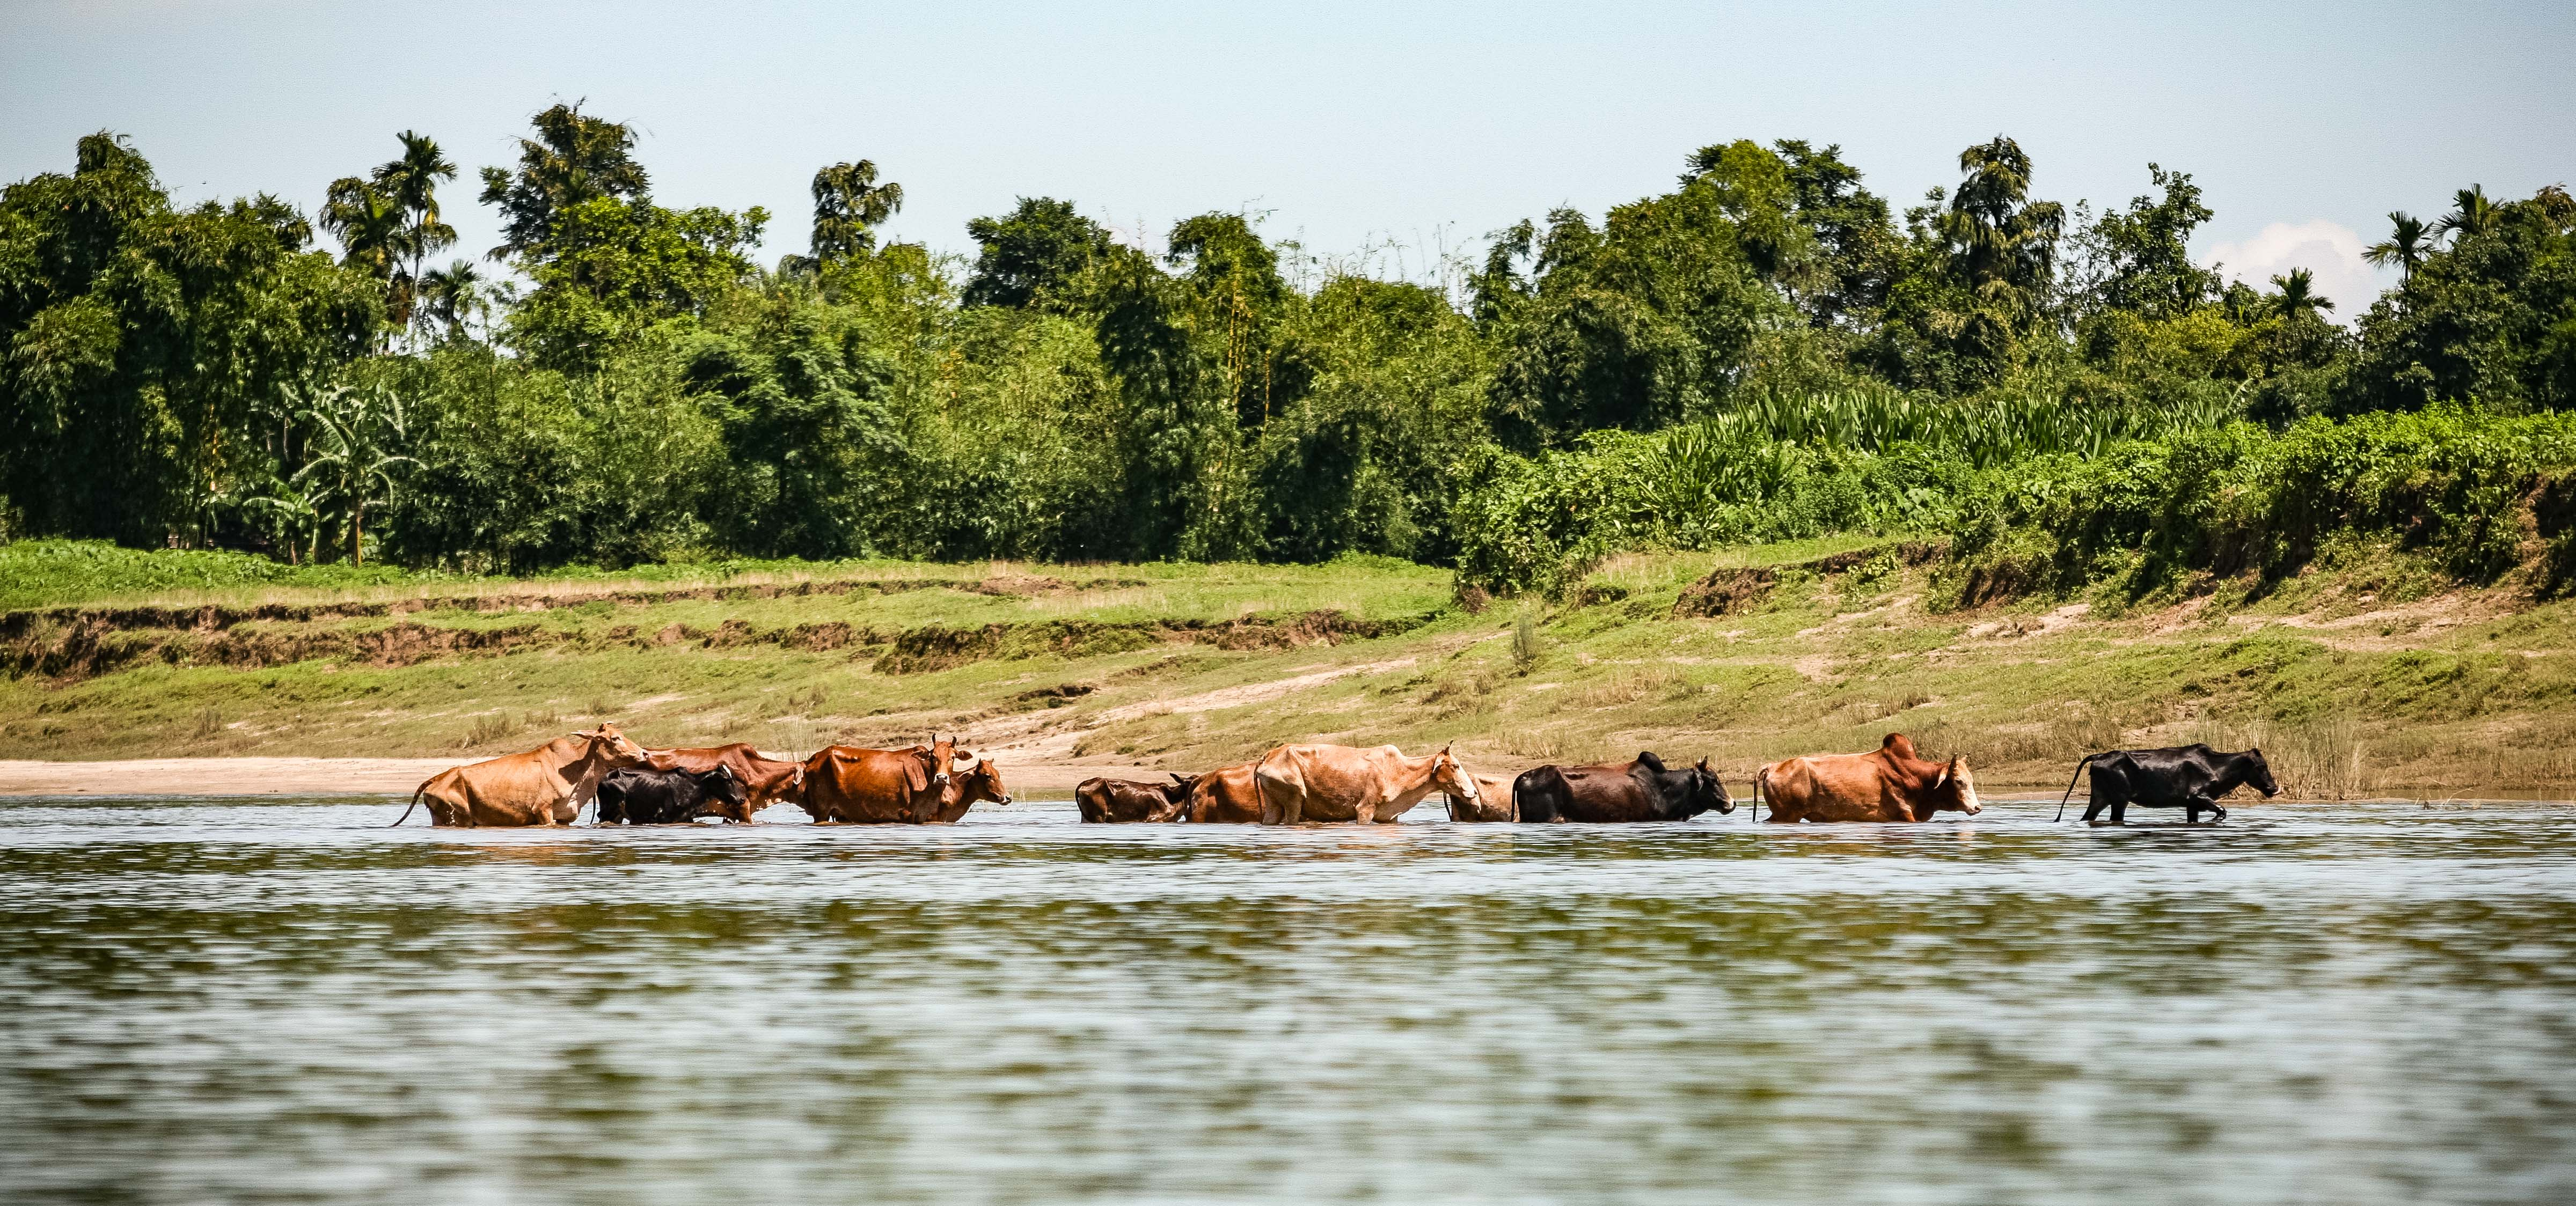 Bangladesh, Sylhet Prov, Cattle In River, 2009, IMG 8121